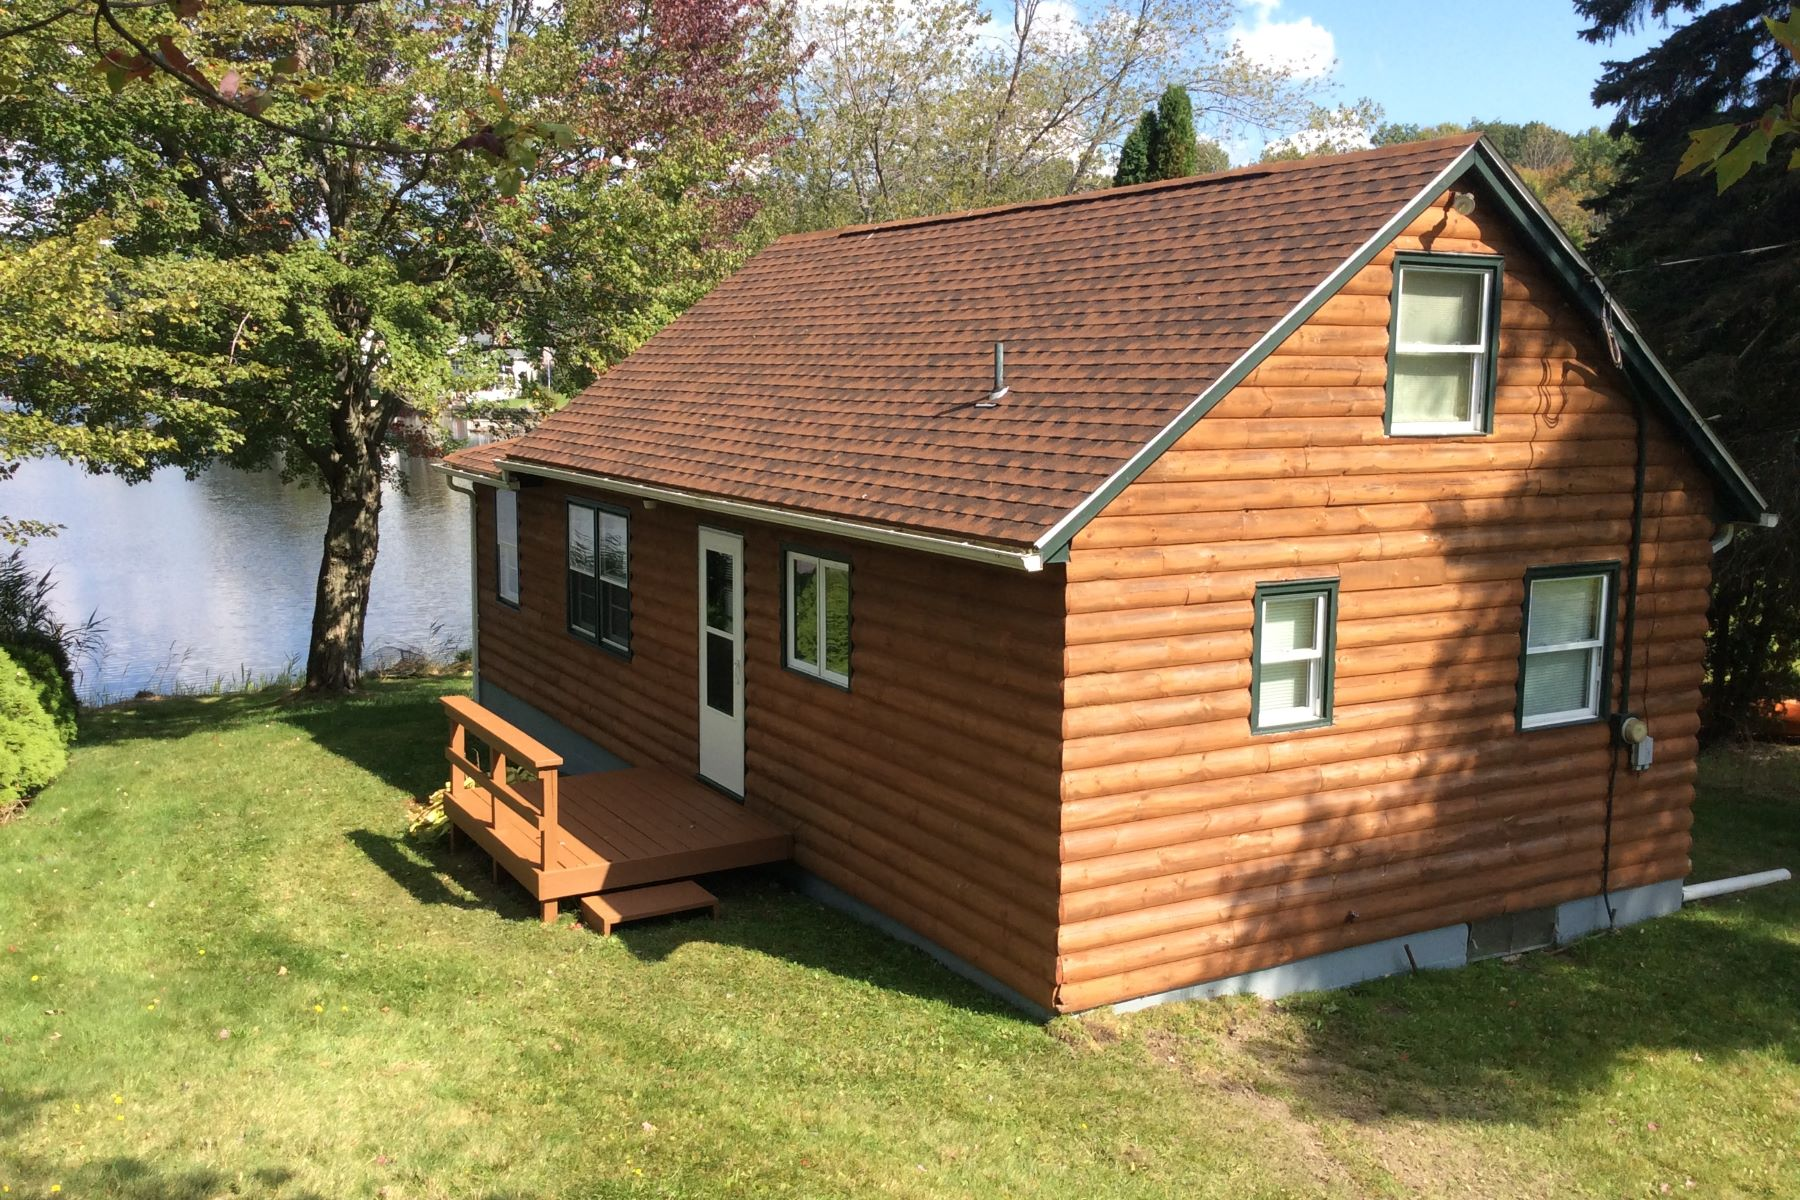 Single Family Home for Sale at Log Cabin Lakefront Cottage 26 Flora Road Goshen, Connecticut 06756 United States